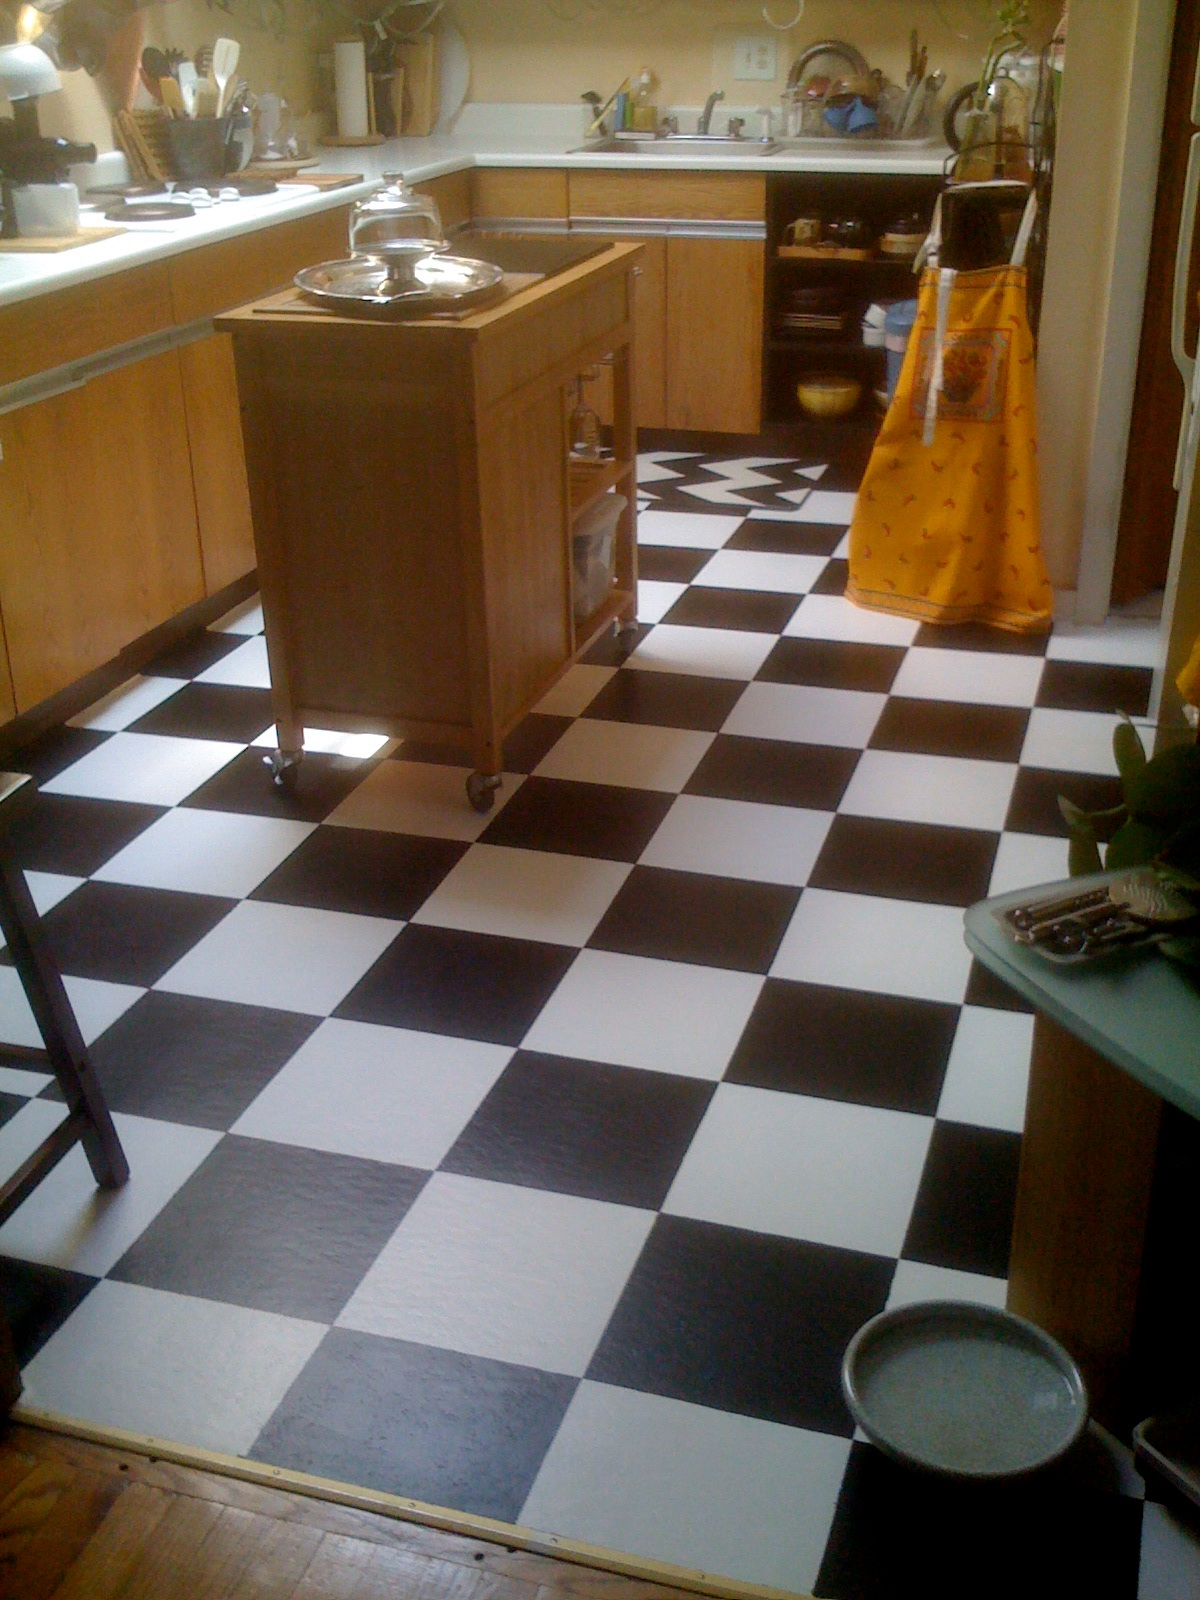 Unique painting over kitchen tiles taste diy hate those vinyl tiles paint over em mary wiseman designs dailygadgetfo Choice Image